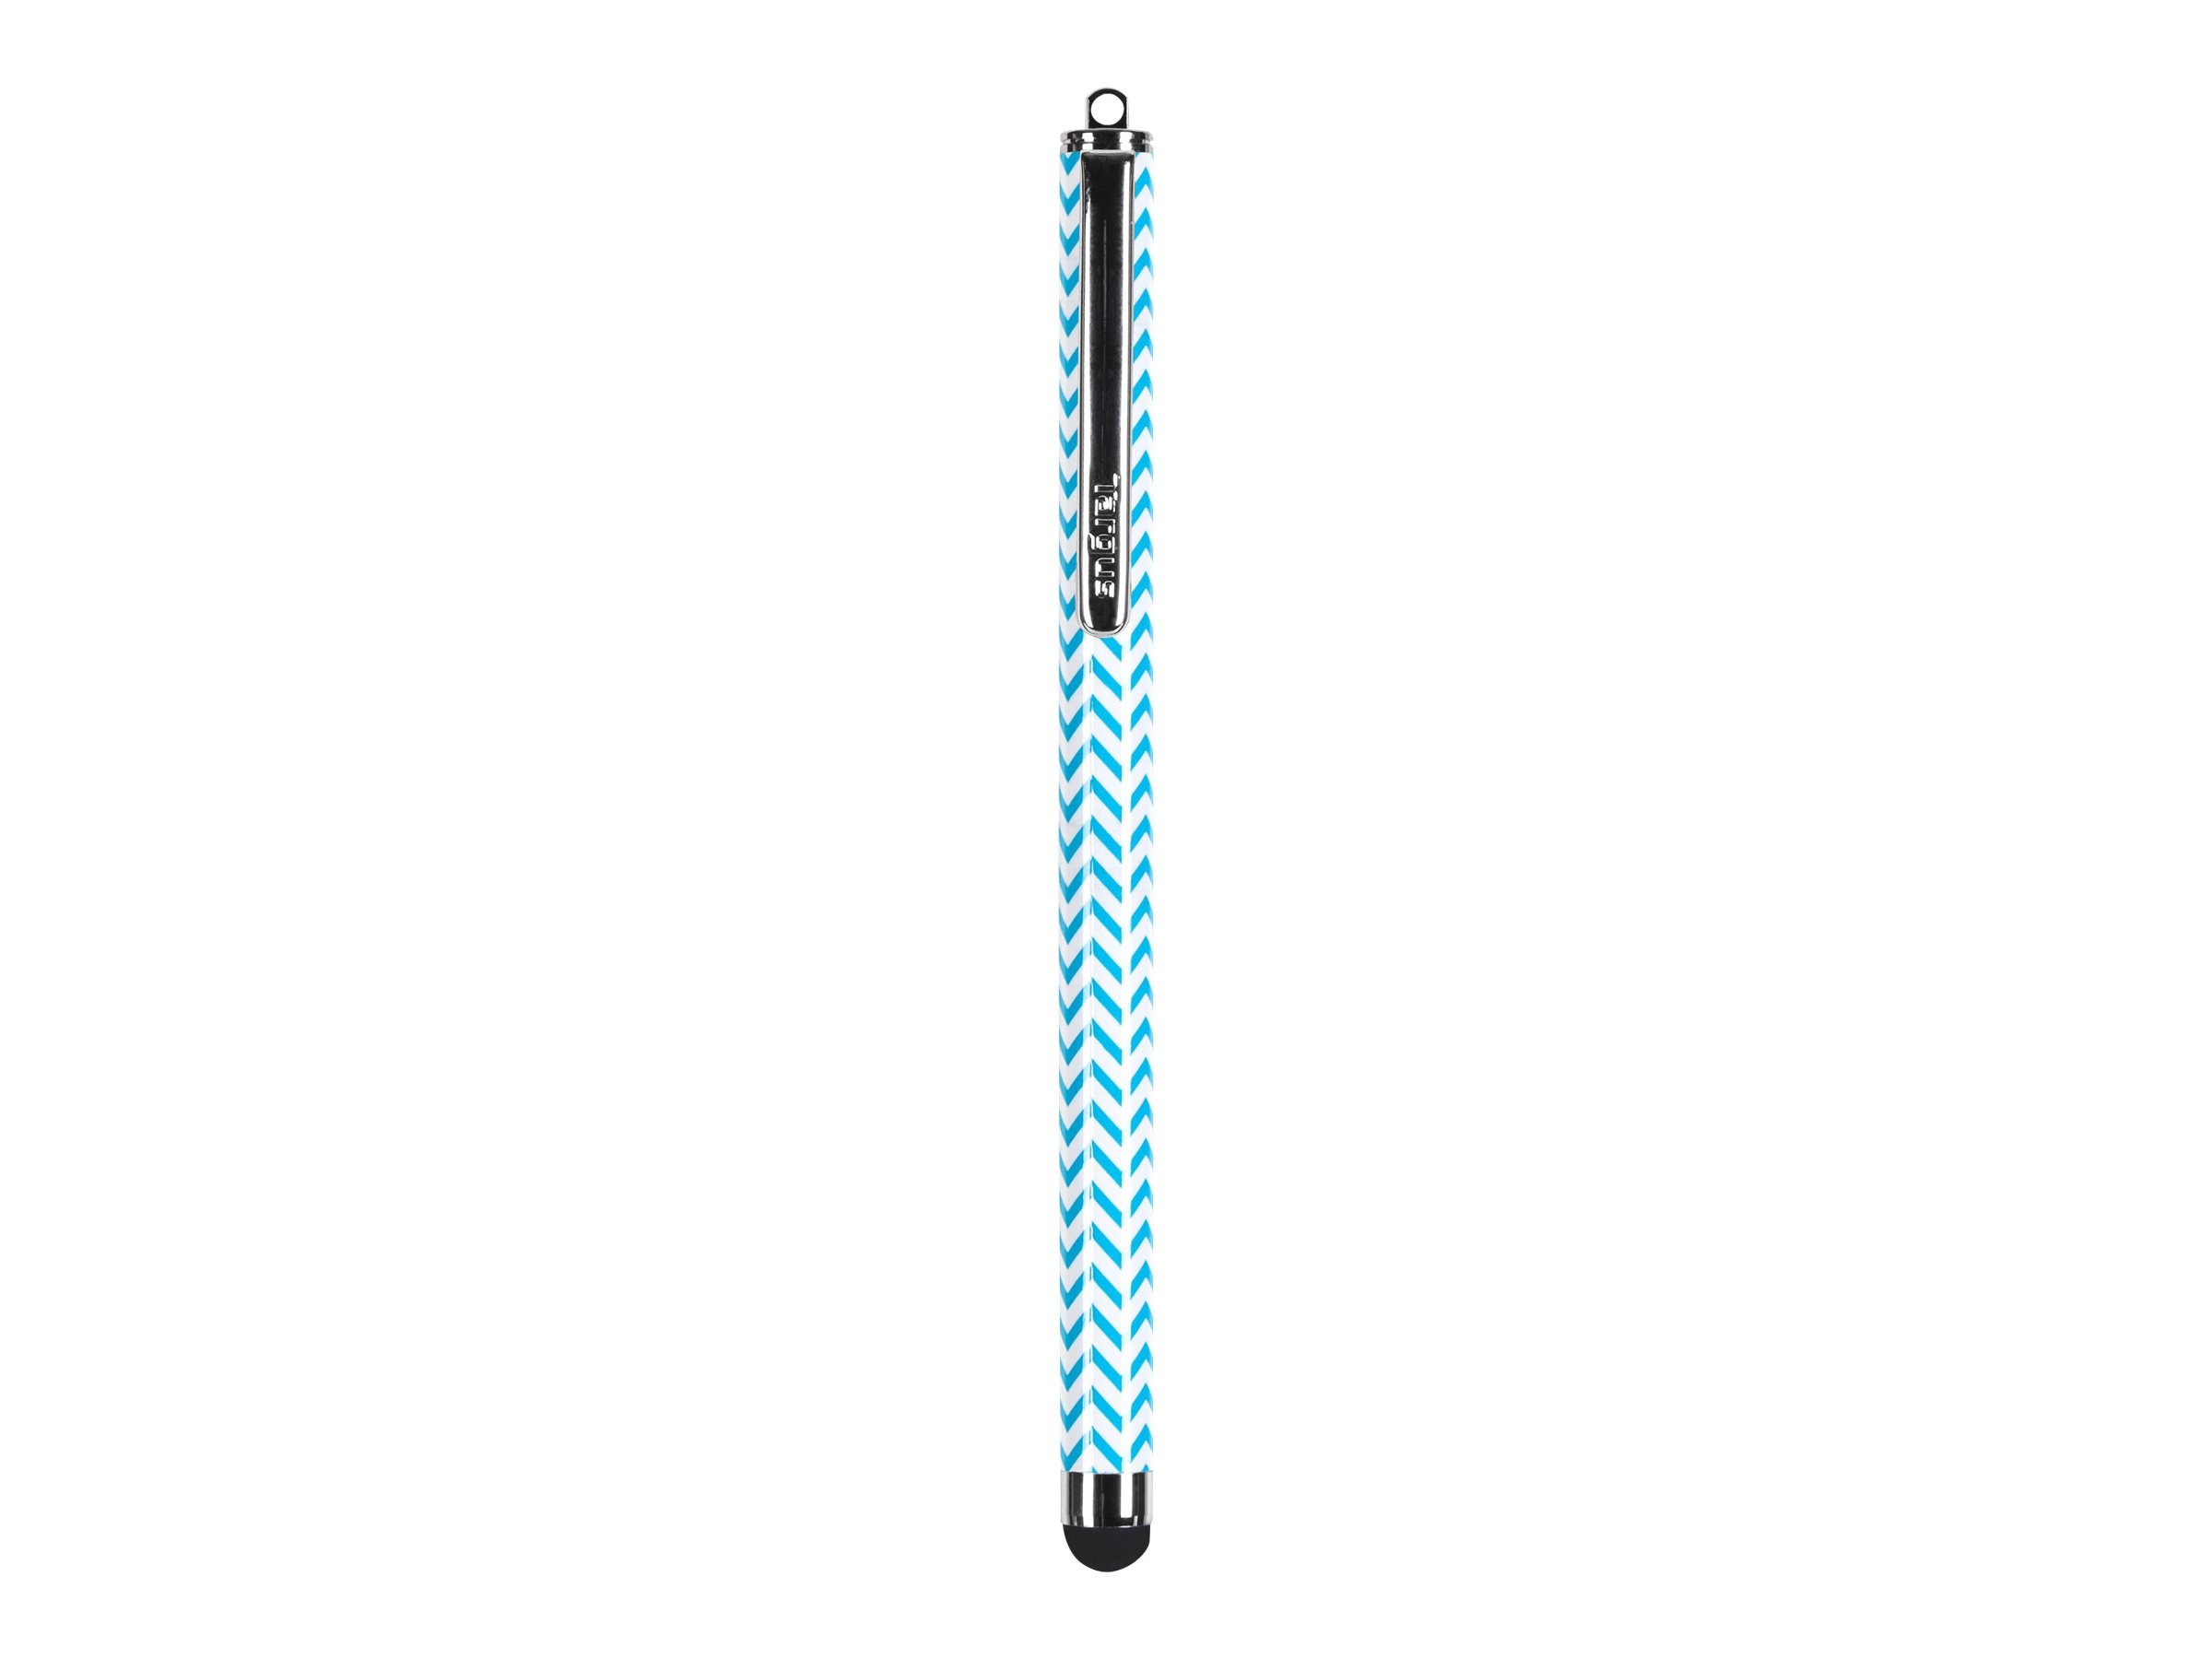 Targus Chevron Patterned Stylus, Blue, AMM01B23US